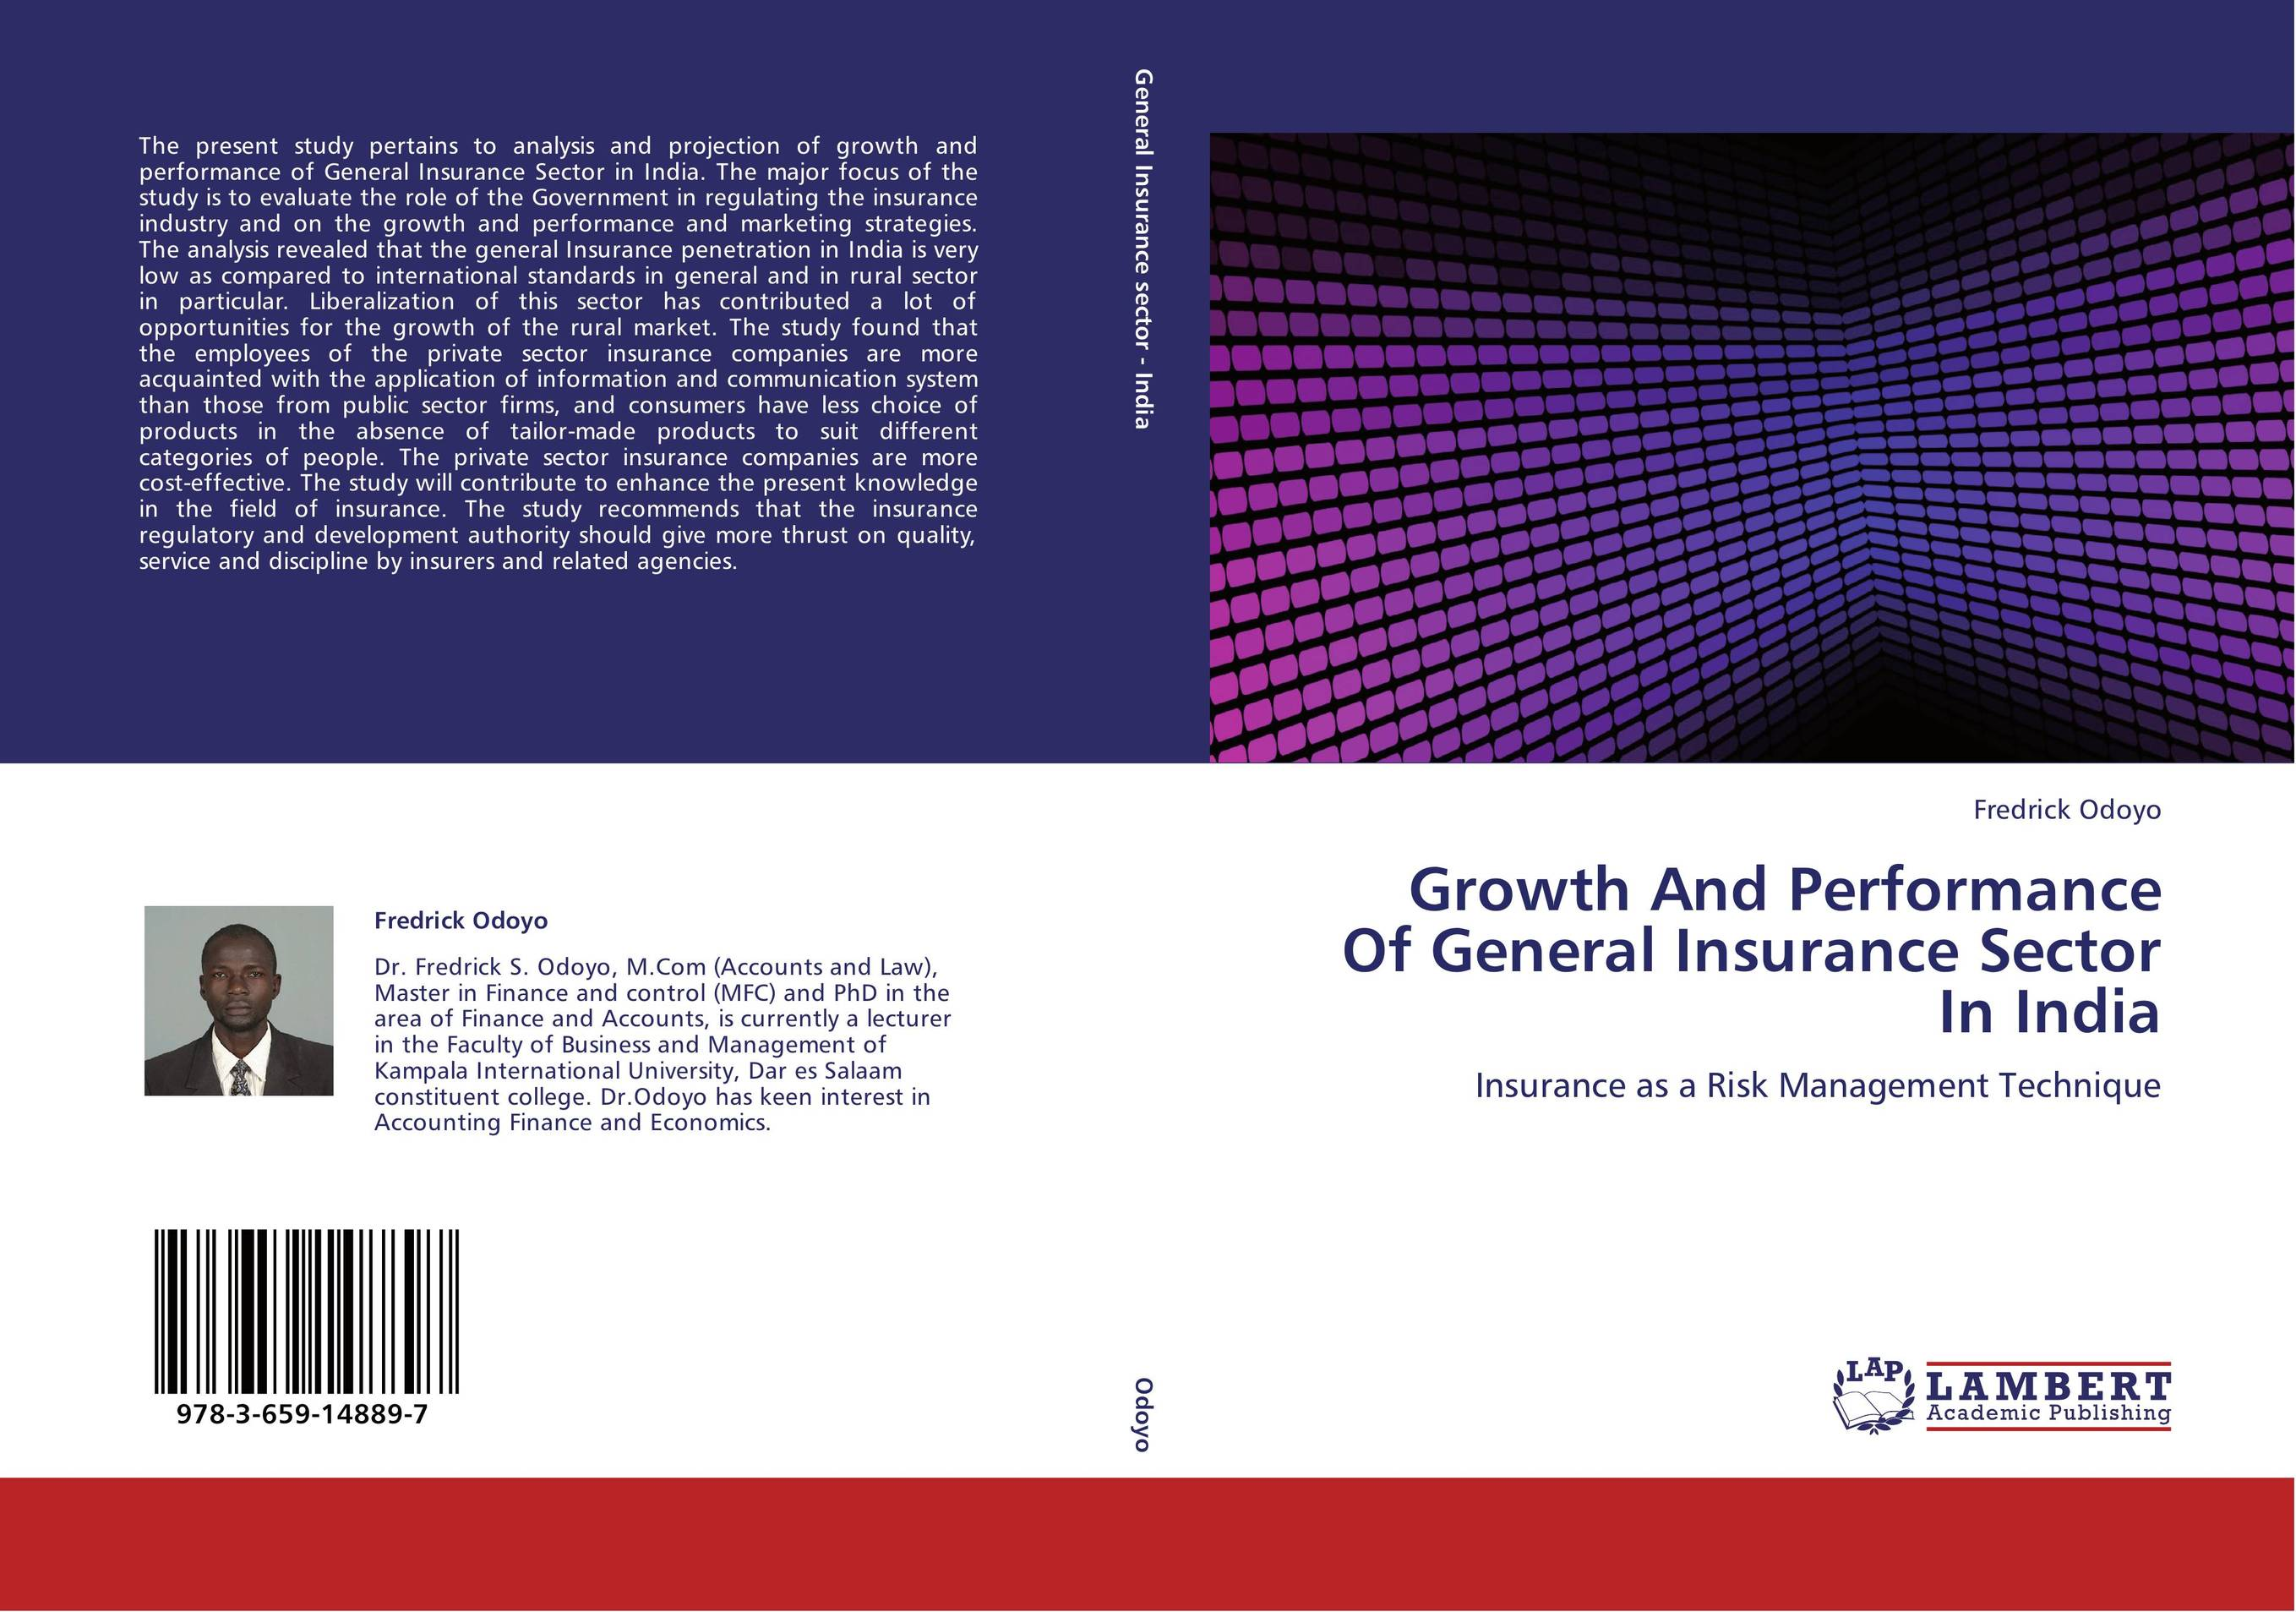 case study on insurance sector in india Perception of service quality in the life insurance sector: a case study on north east india shyamasree saha 1 and anirban dutta 1 1 research scholar, nit agartala, tripura, india 2 asst professor, nit agartala, tripura, india abstract in this research paper an attempt has been made to study the customer's perception of.